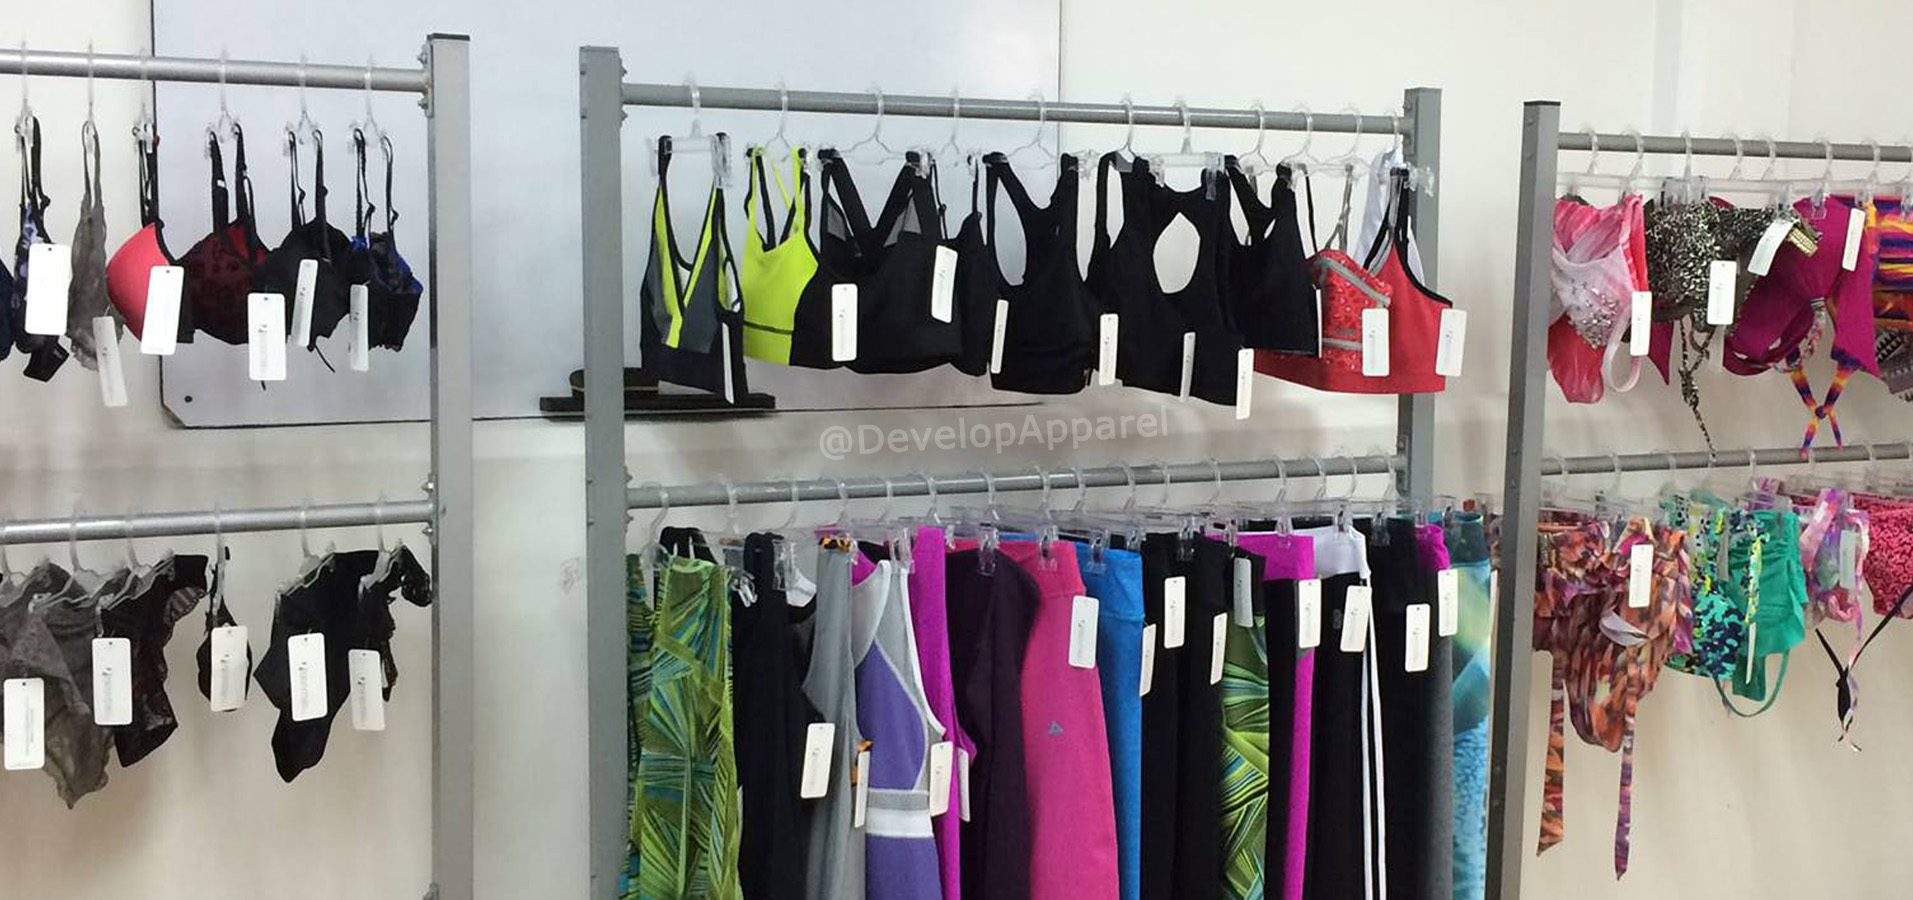 Sample rack of swim and activewear